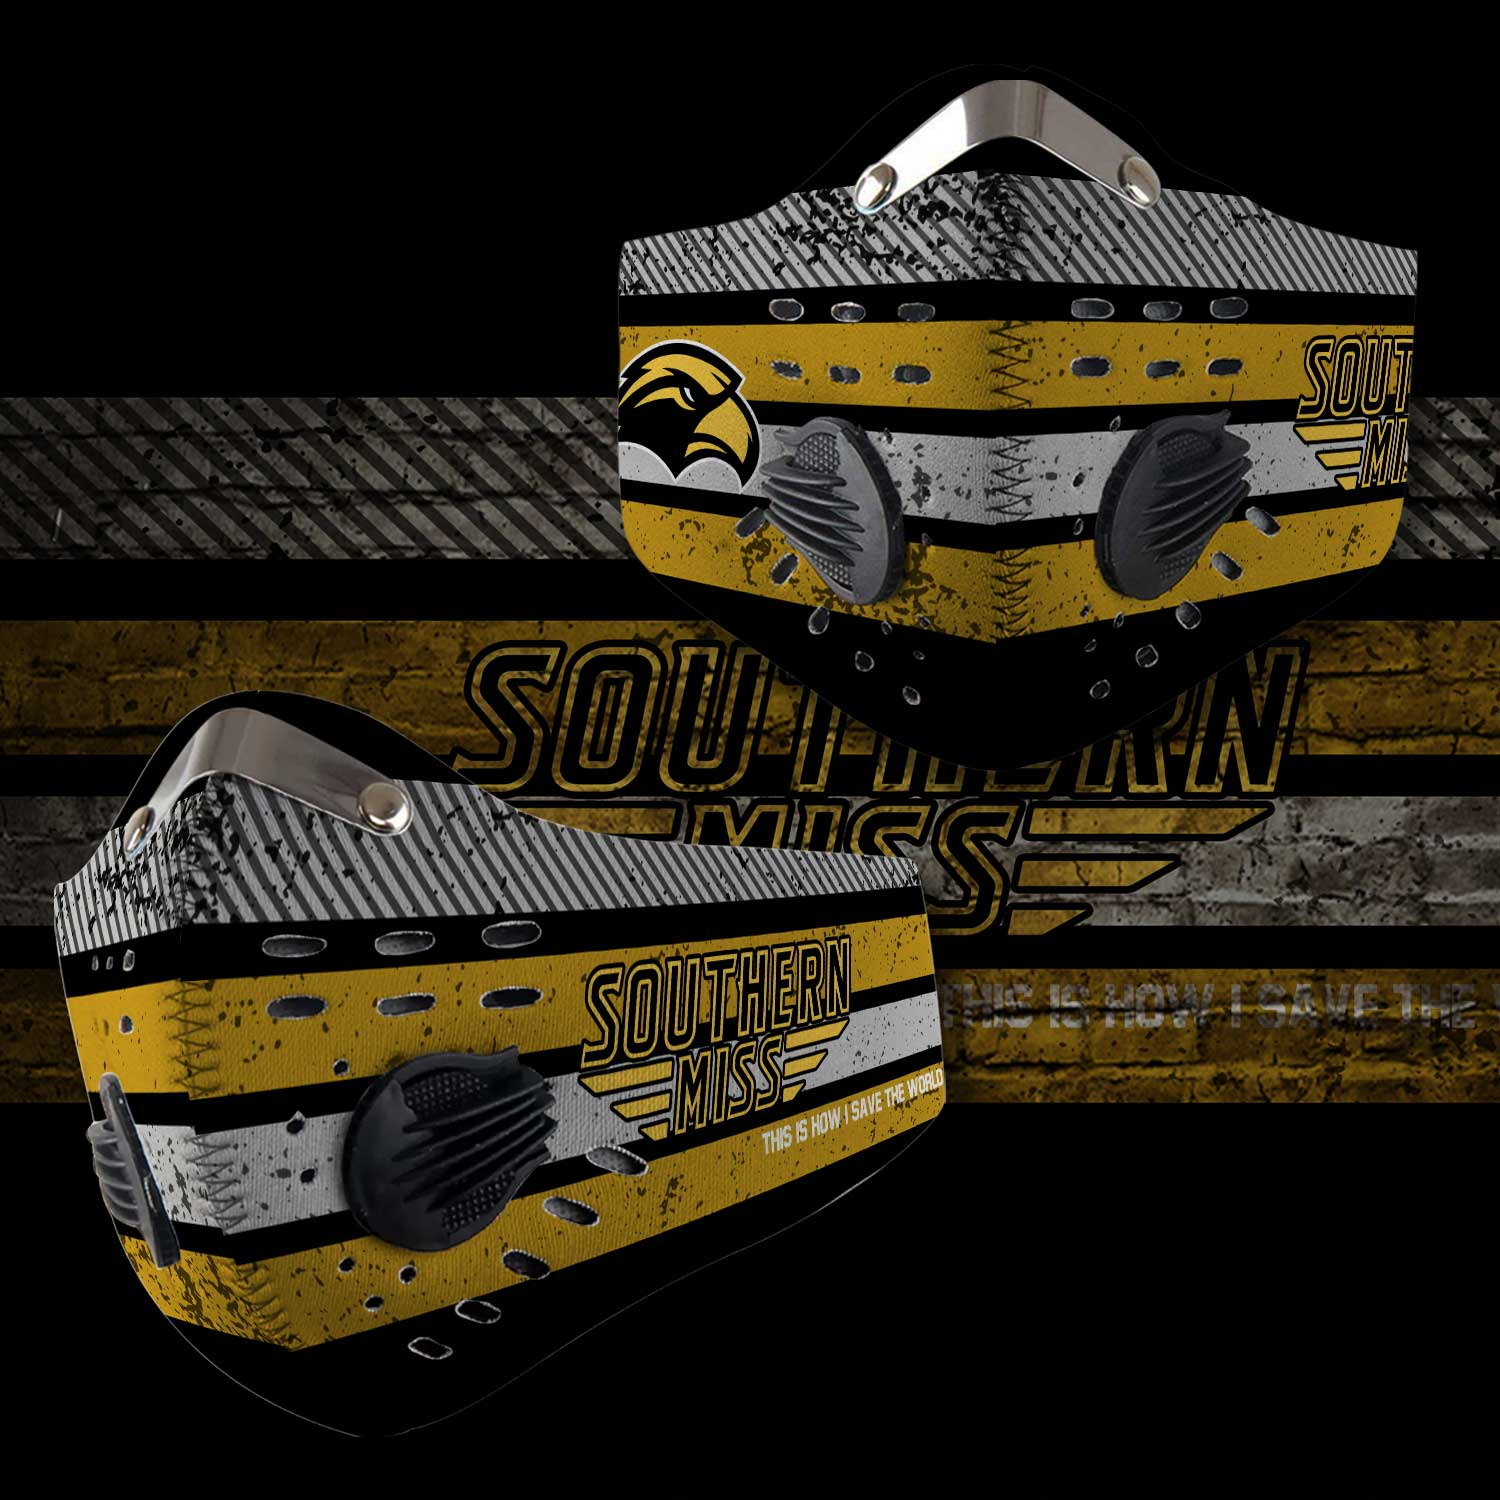 Southern miss golden eagles this is how i save the world face mask 1